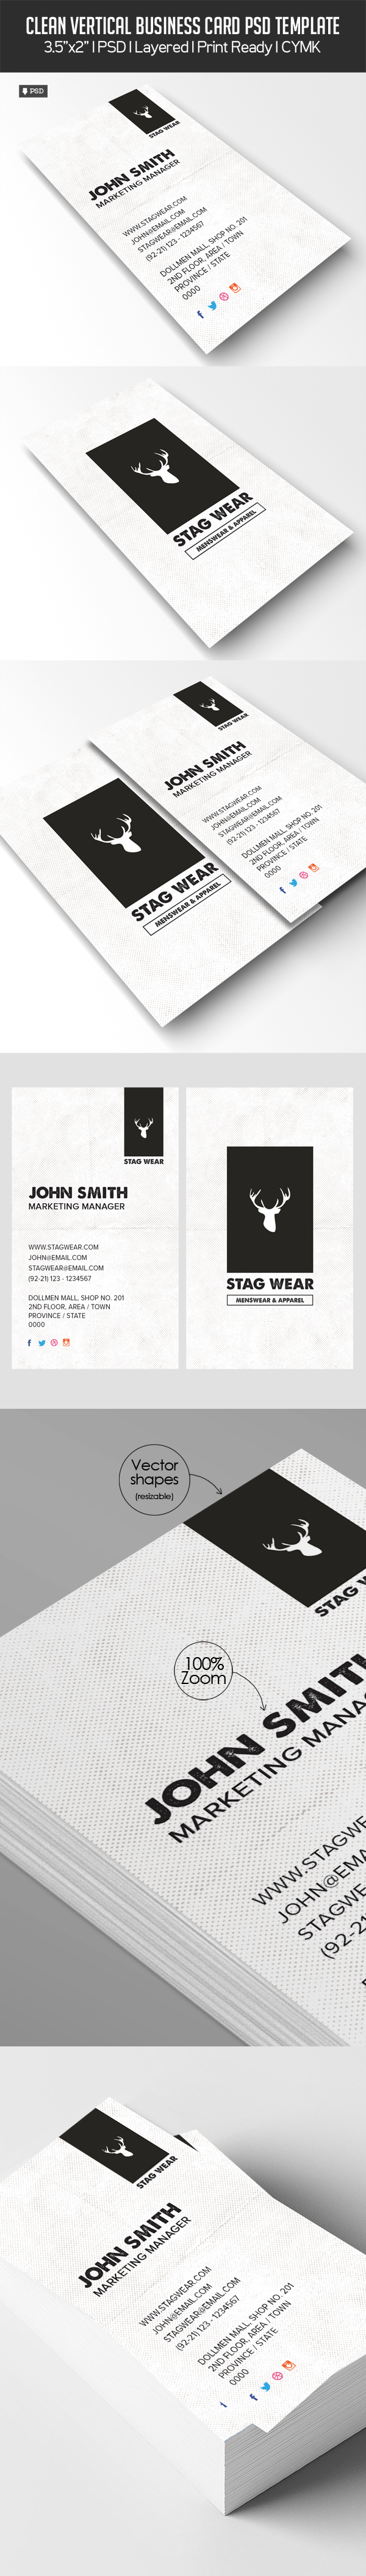 freebie – vertical business card psd template freebies